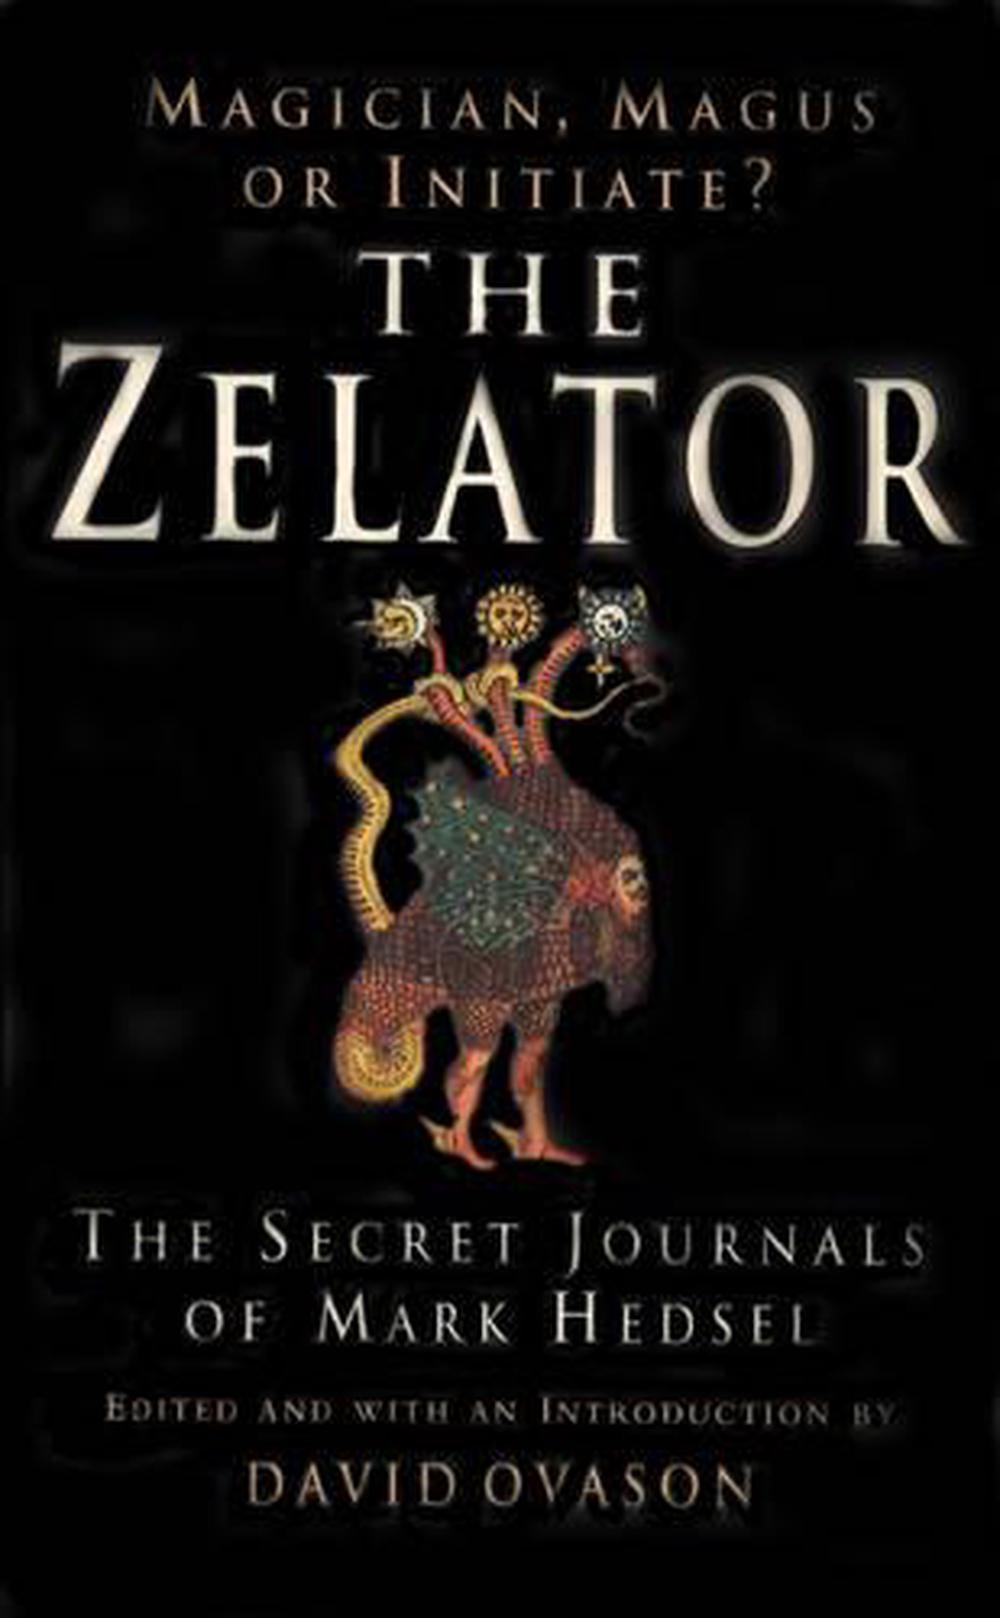 The Zelator. by David Ovason